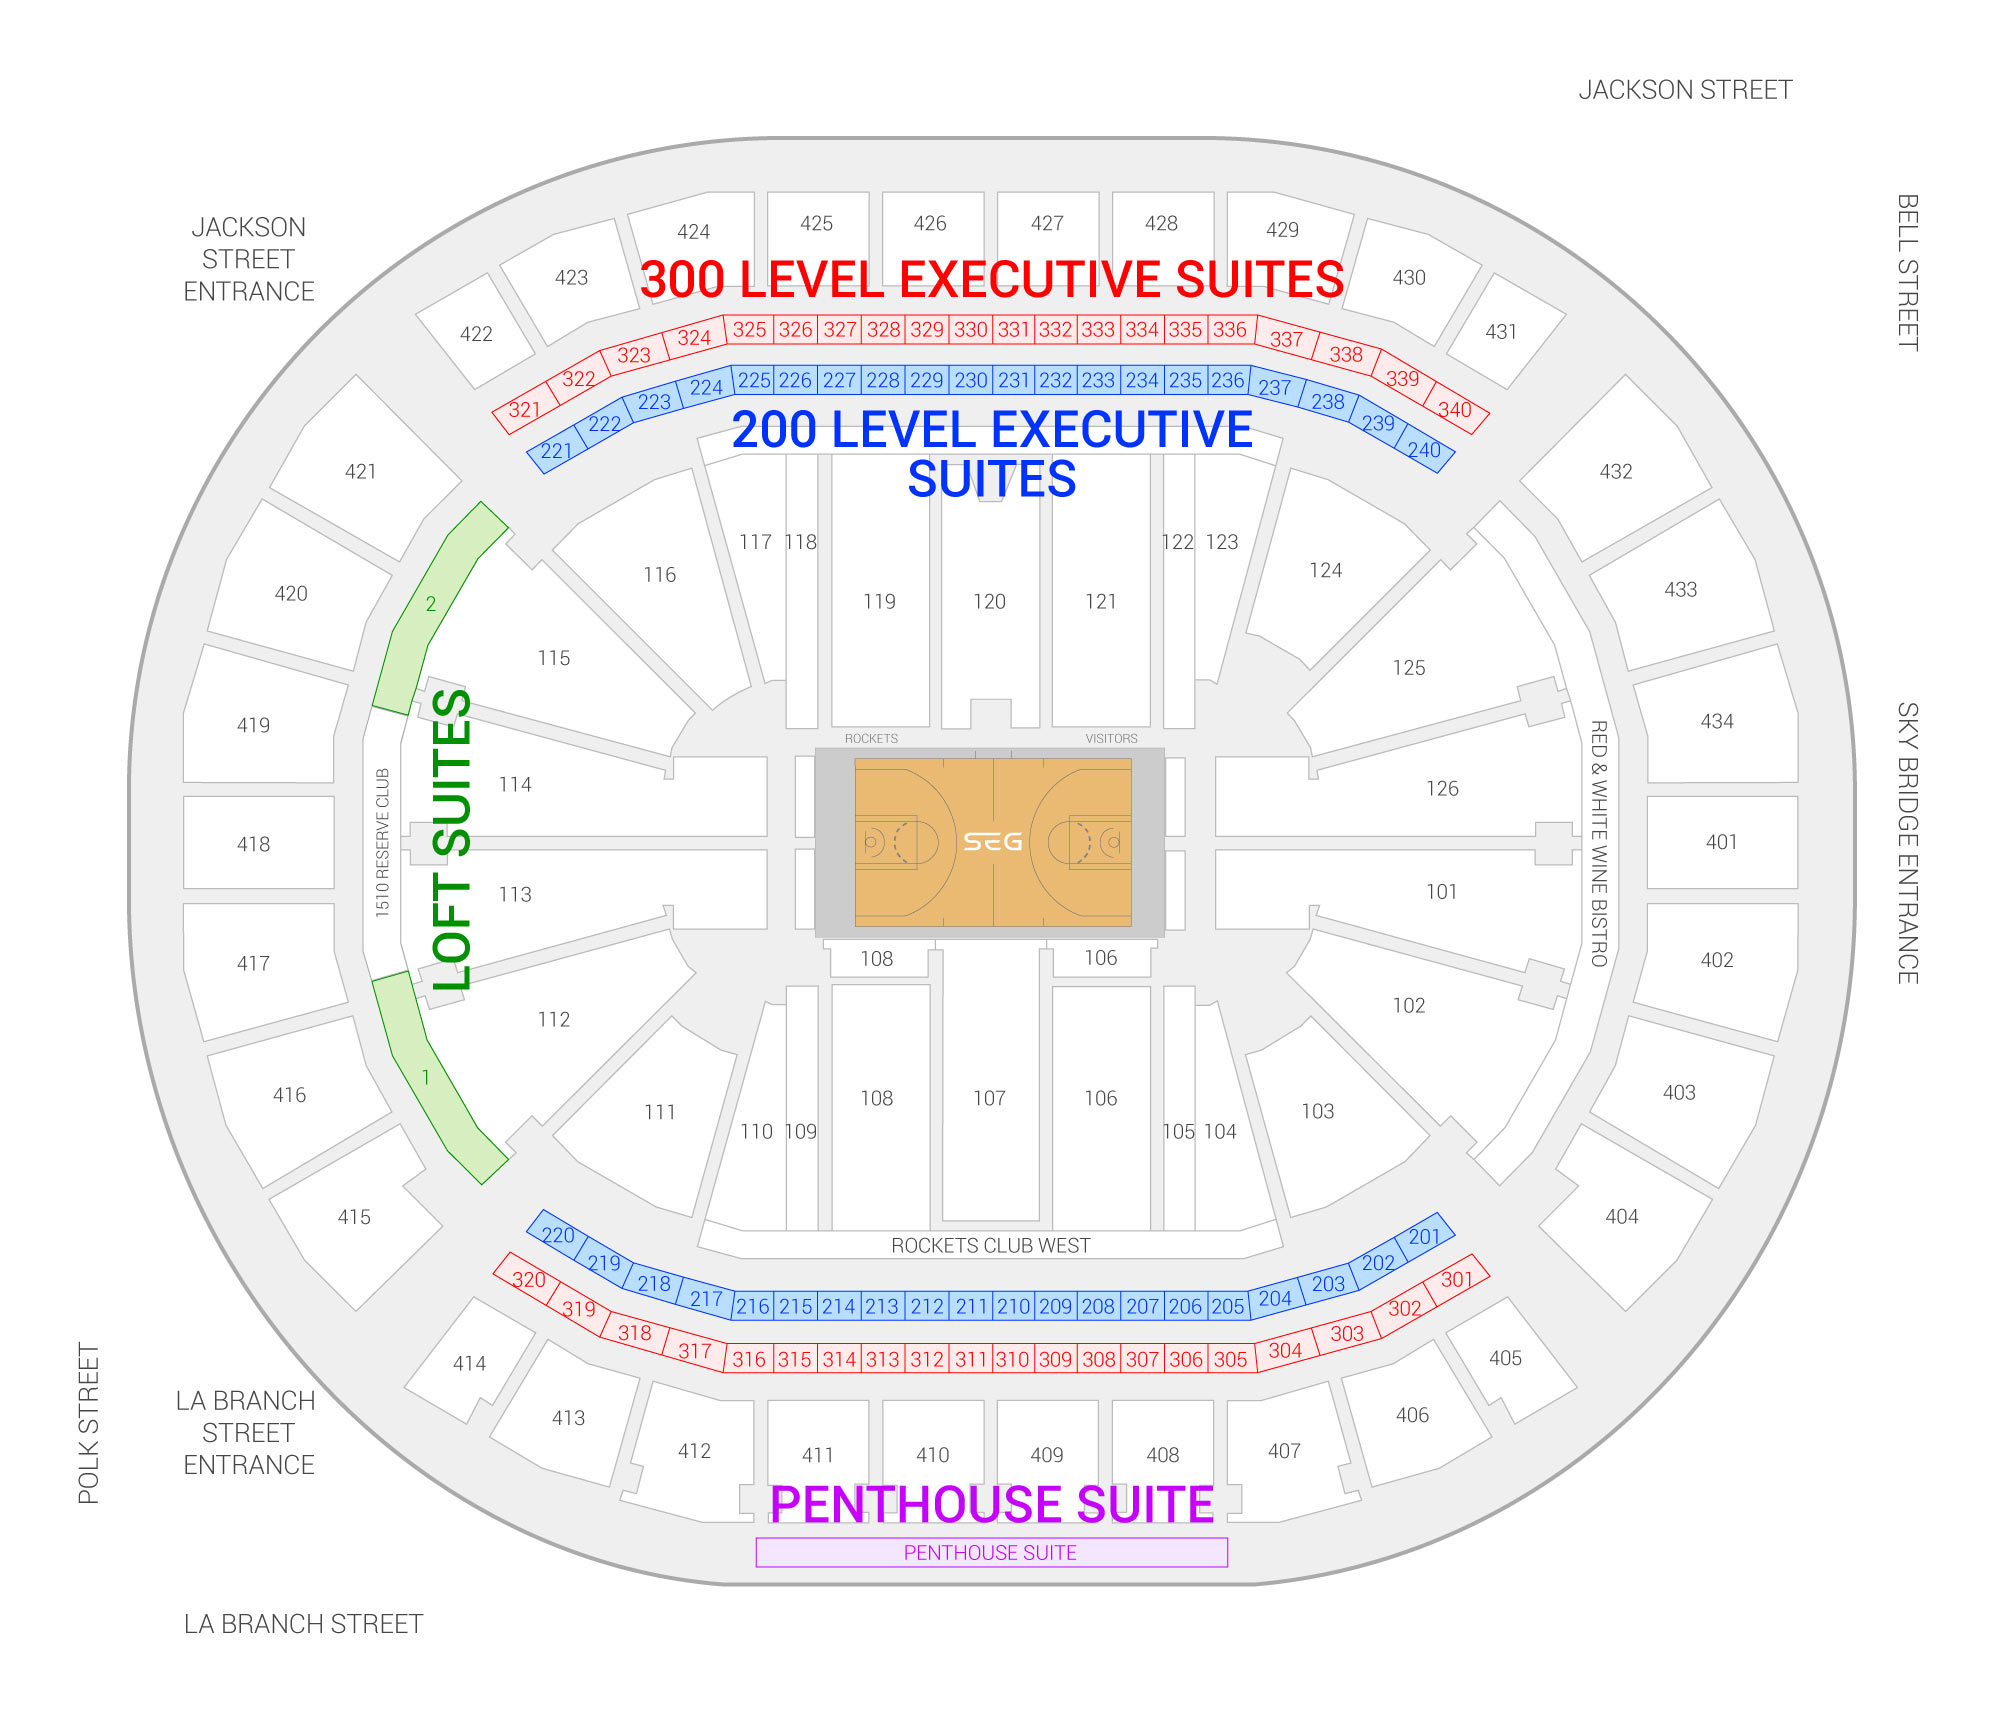 Toyota Center / Houston Rockets Suite Map and Seating Chart